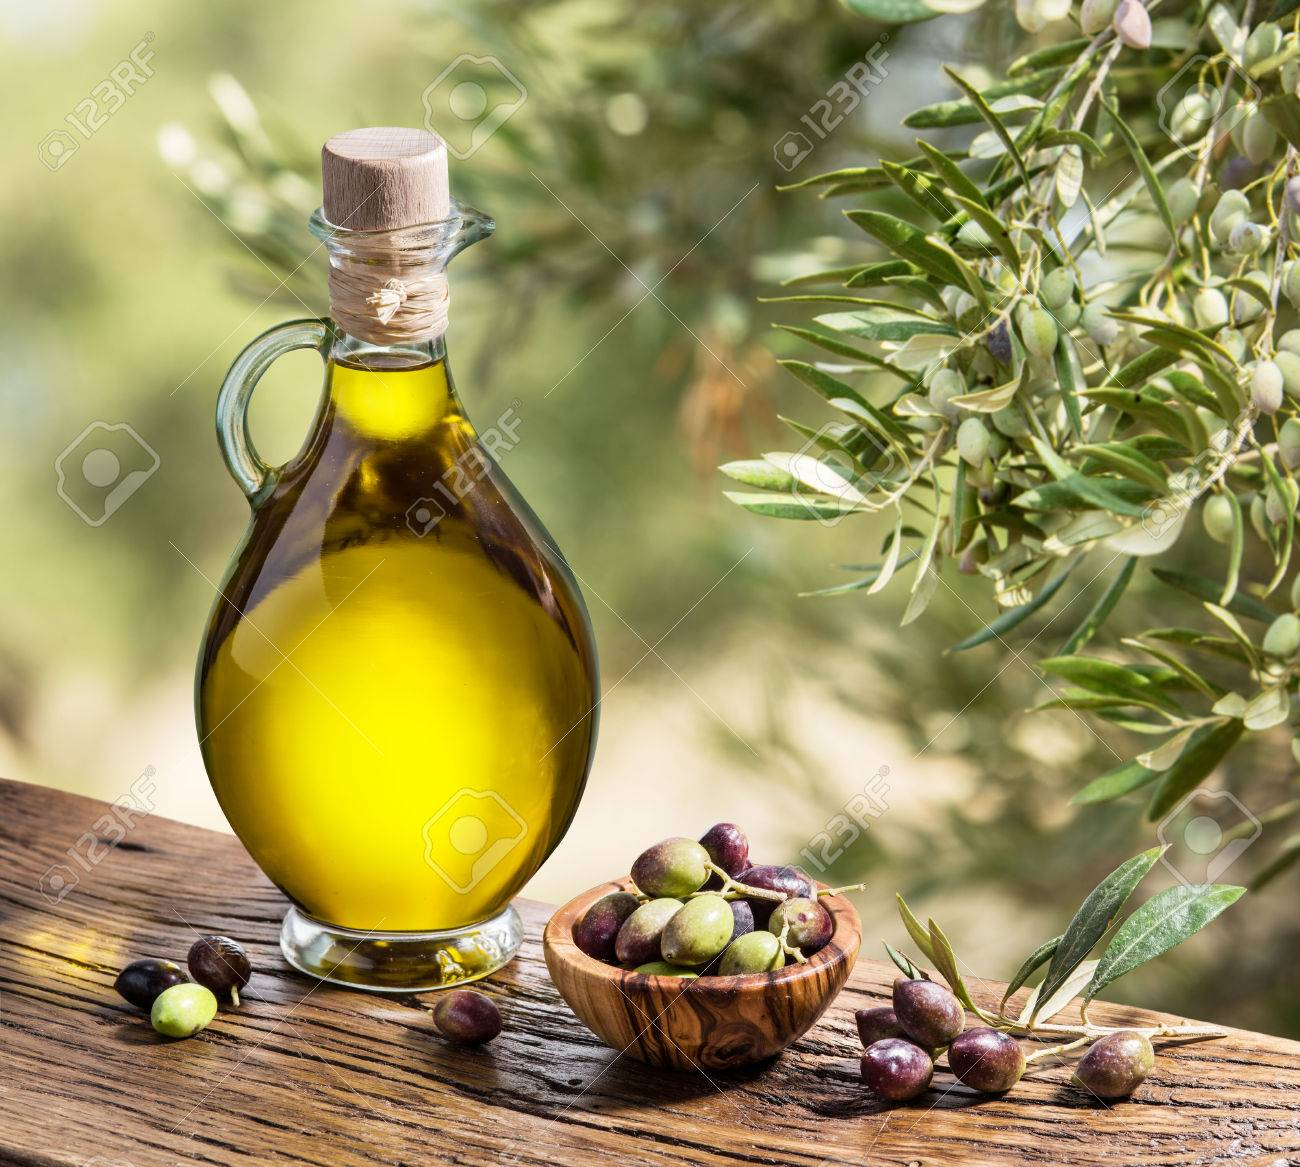 Olive oil and berries are on the wooden table under the olive tree. - 49092498